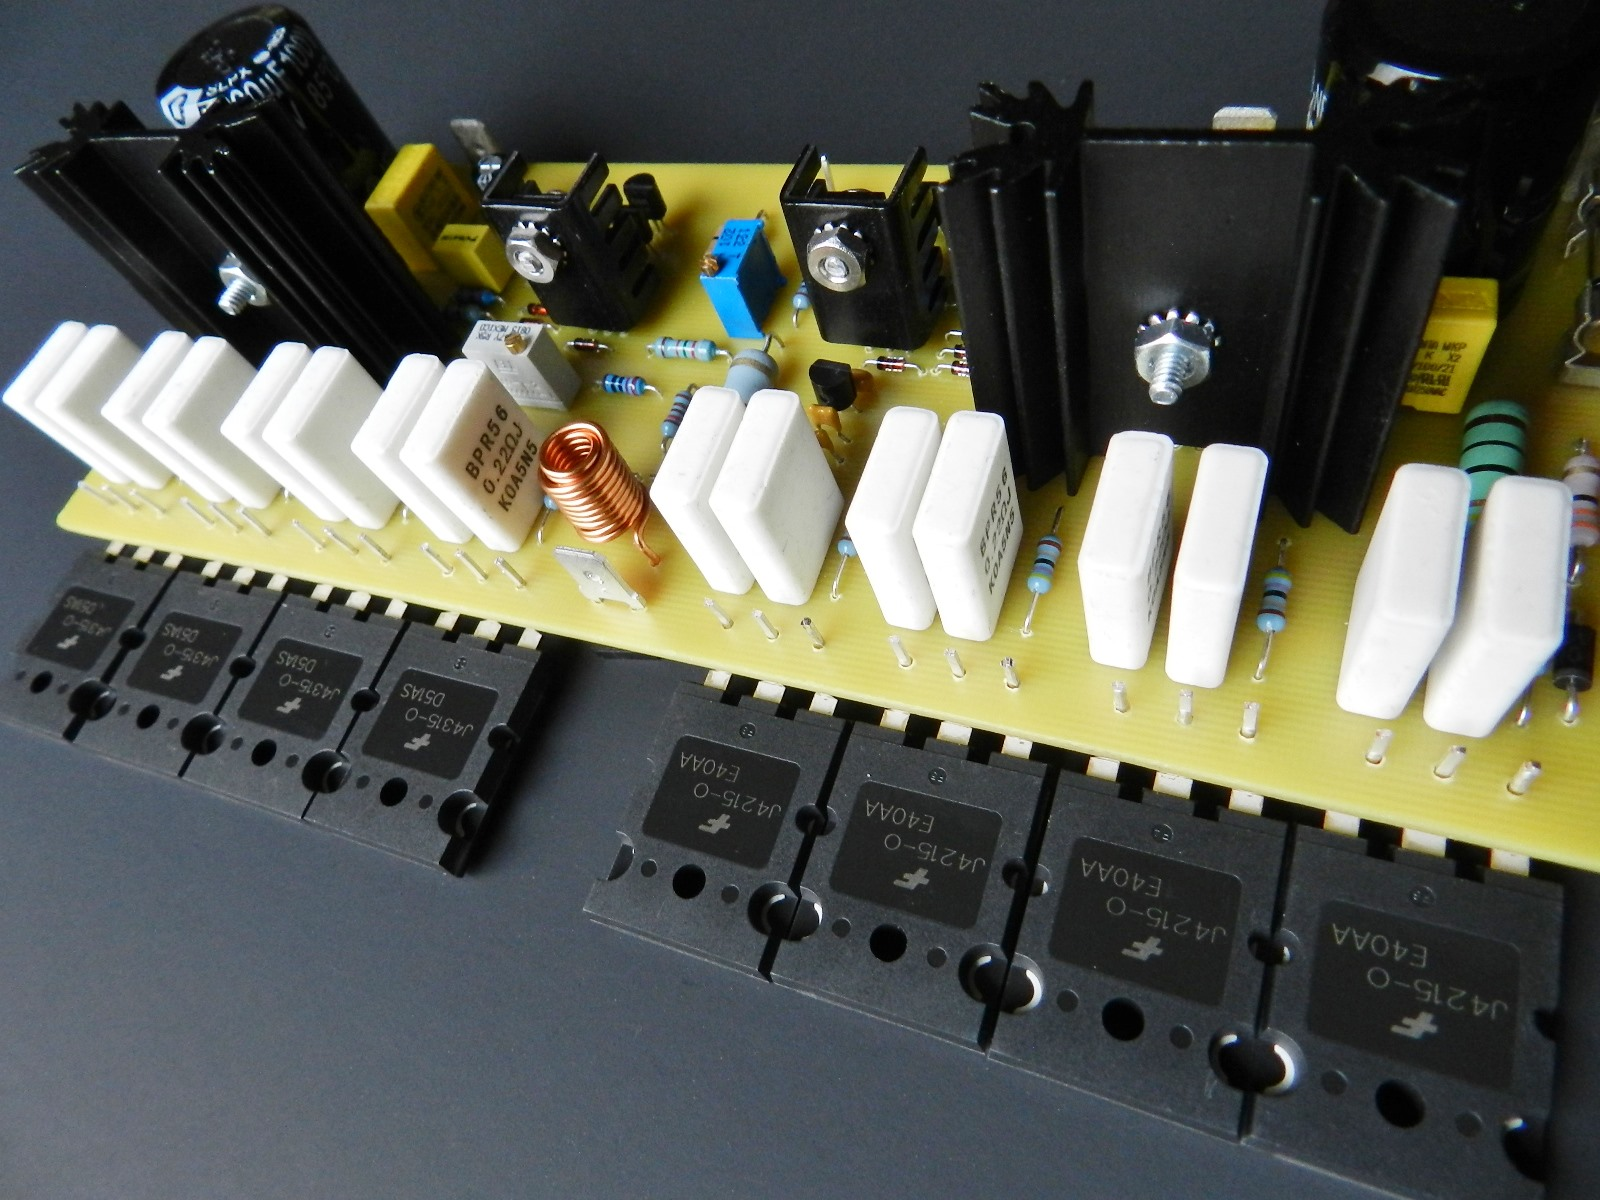 Project 57 Buildaudioamps Circuit Of Sziklai Pair Also The Gain S Is Input Stage Identical To Previous Cfa Based Projects Tied A Complementary Feedback Cfp Configured Power Output